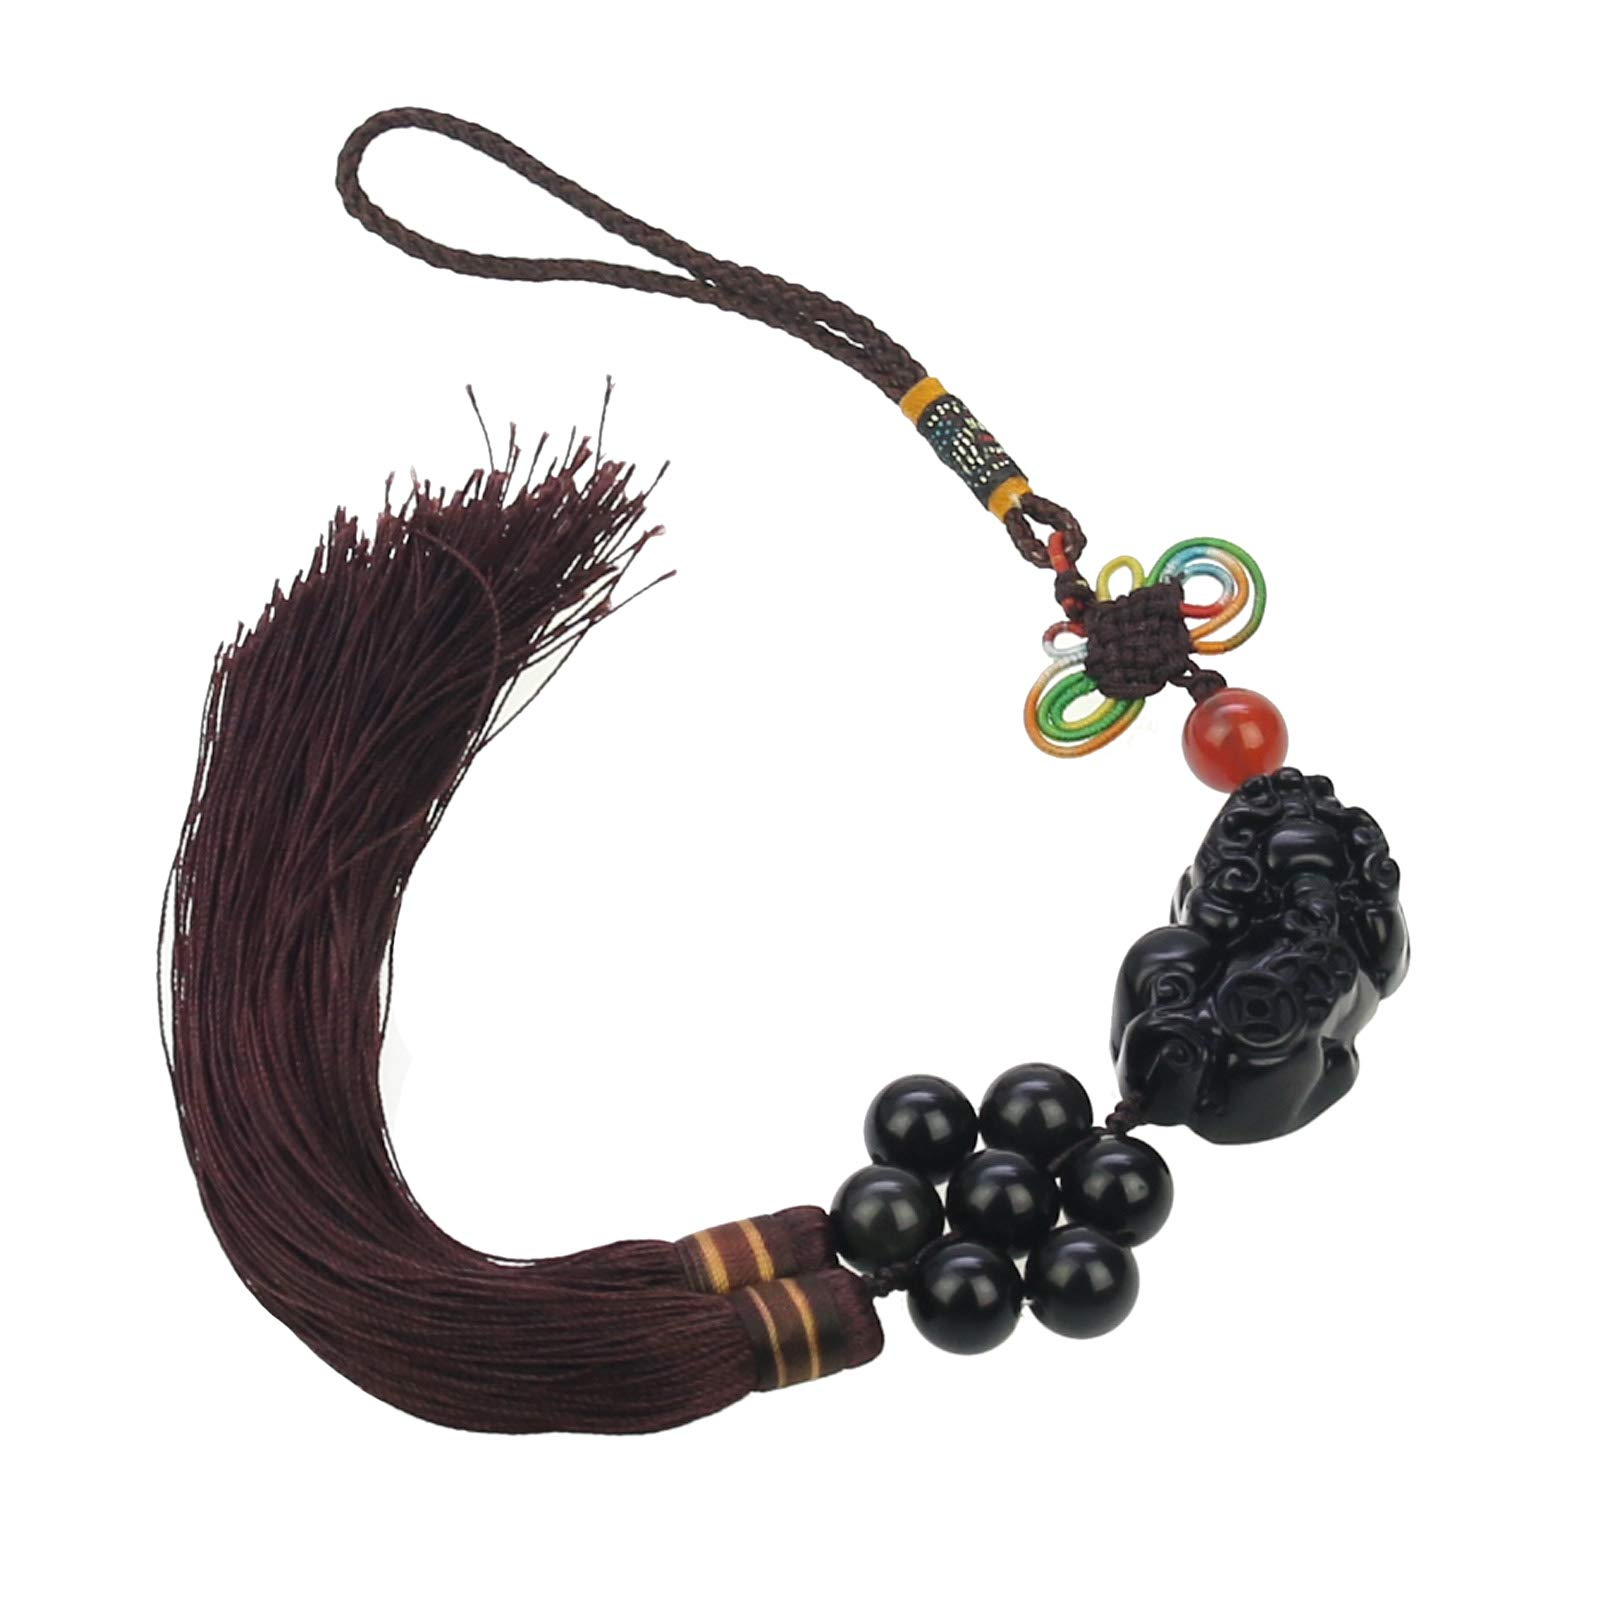 lieomo Feng Shui Obsidian Pi Yao (Pi Xiu) Charm Hanging Decor,Attract Wealth and Good Luck,a Pouch Included